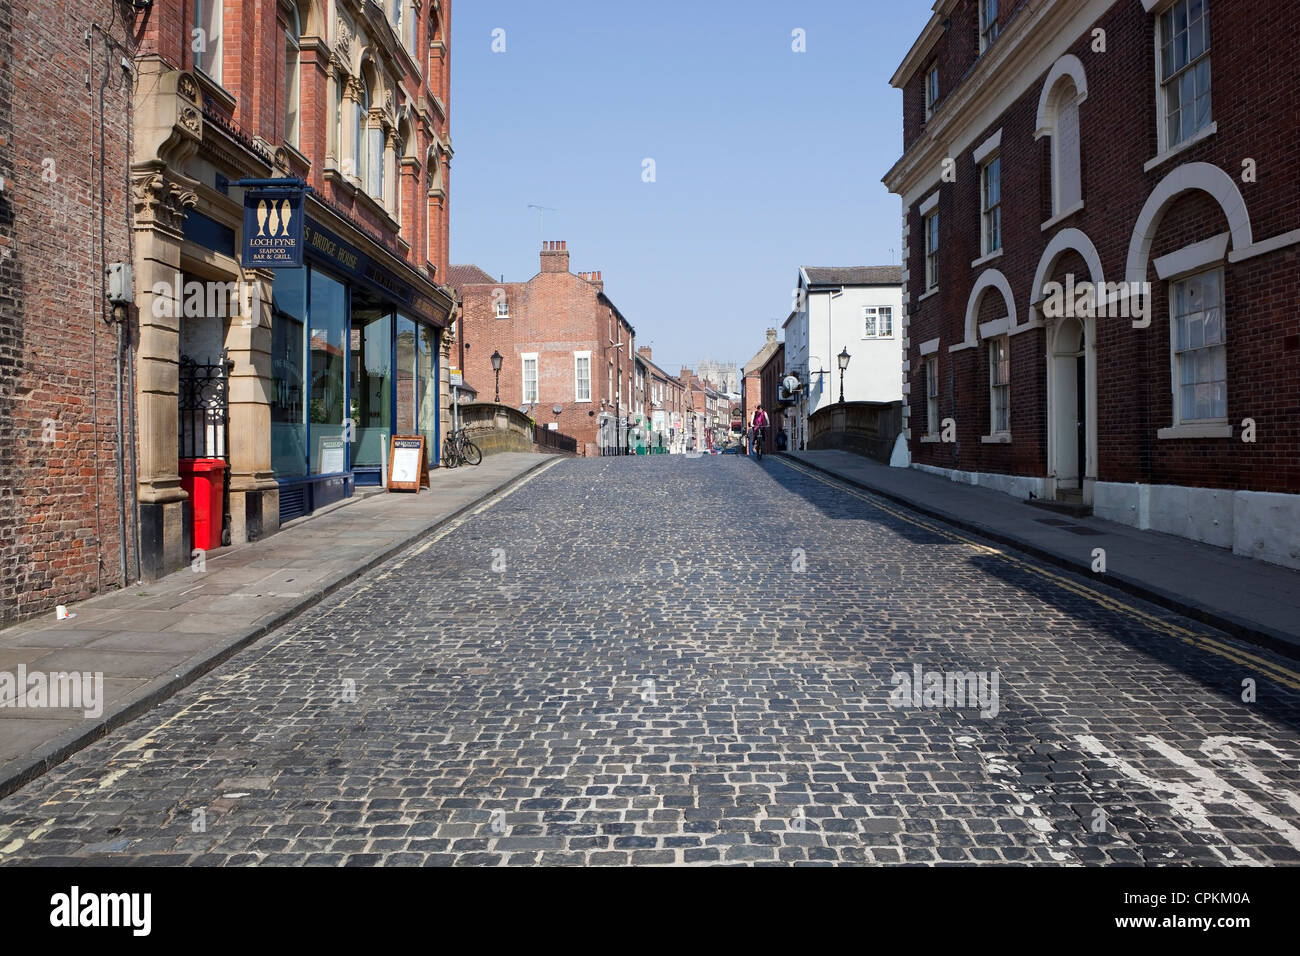 Fossgate cobbled street flanked by historic buildings in the Ancient city of York, England. - Stock Image